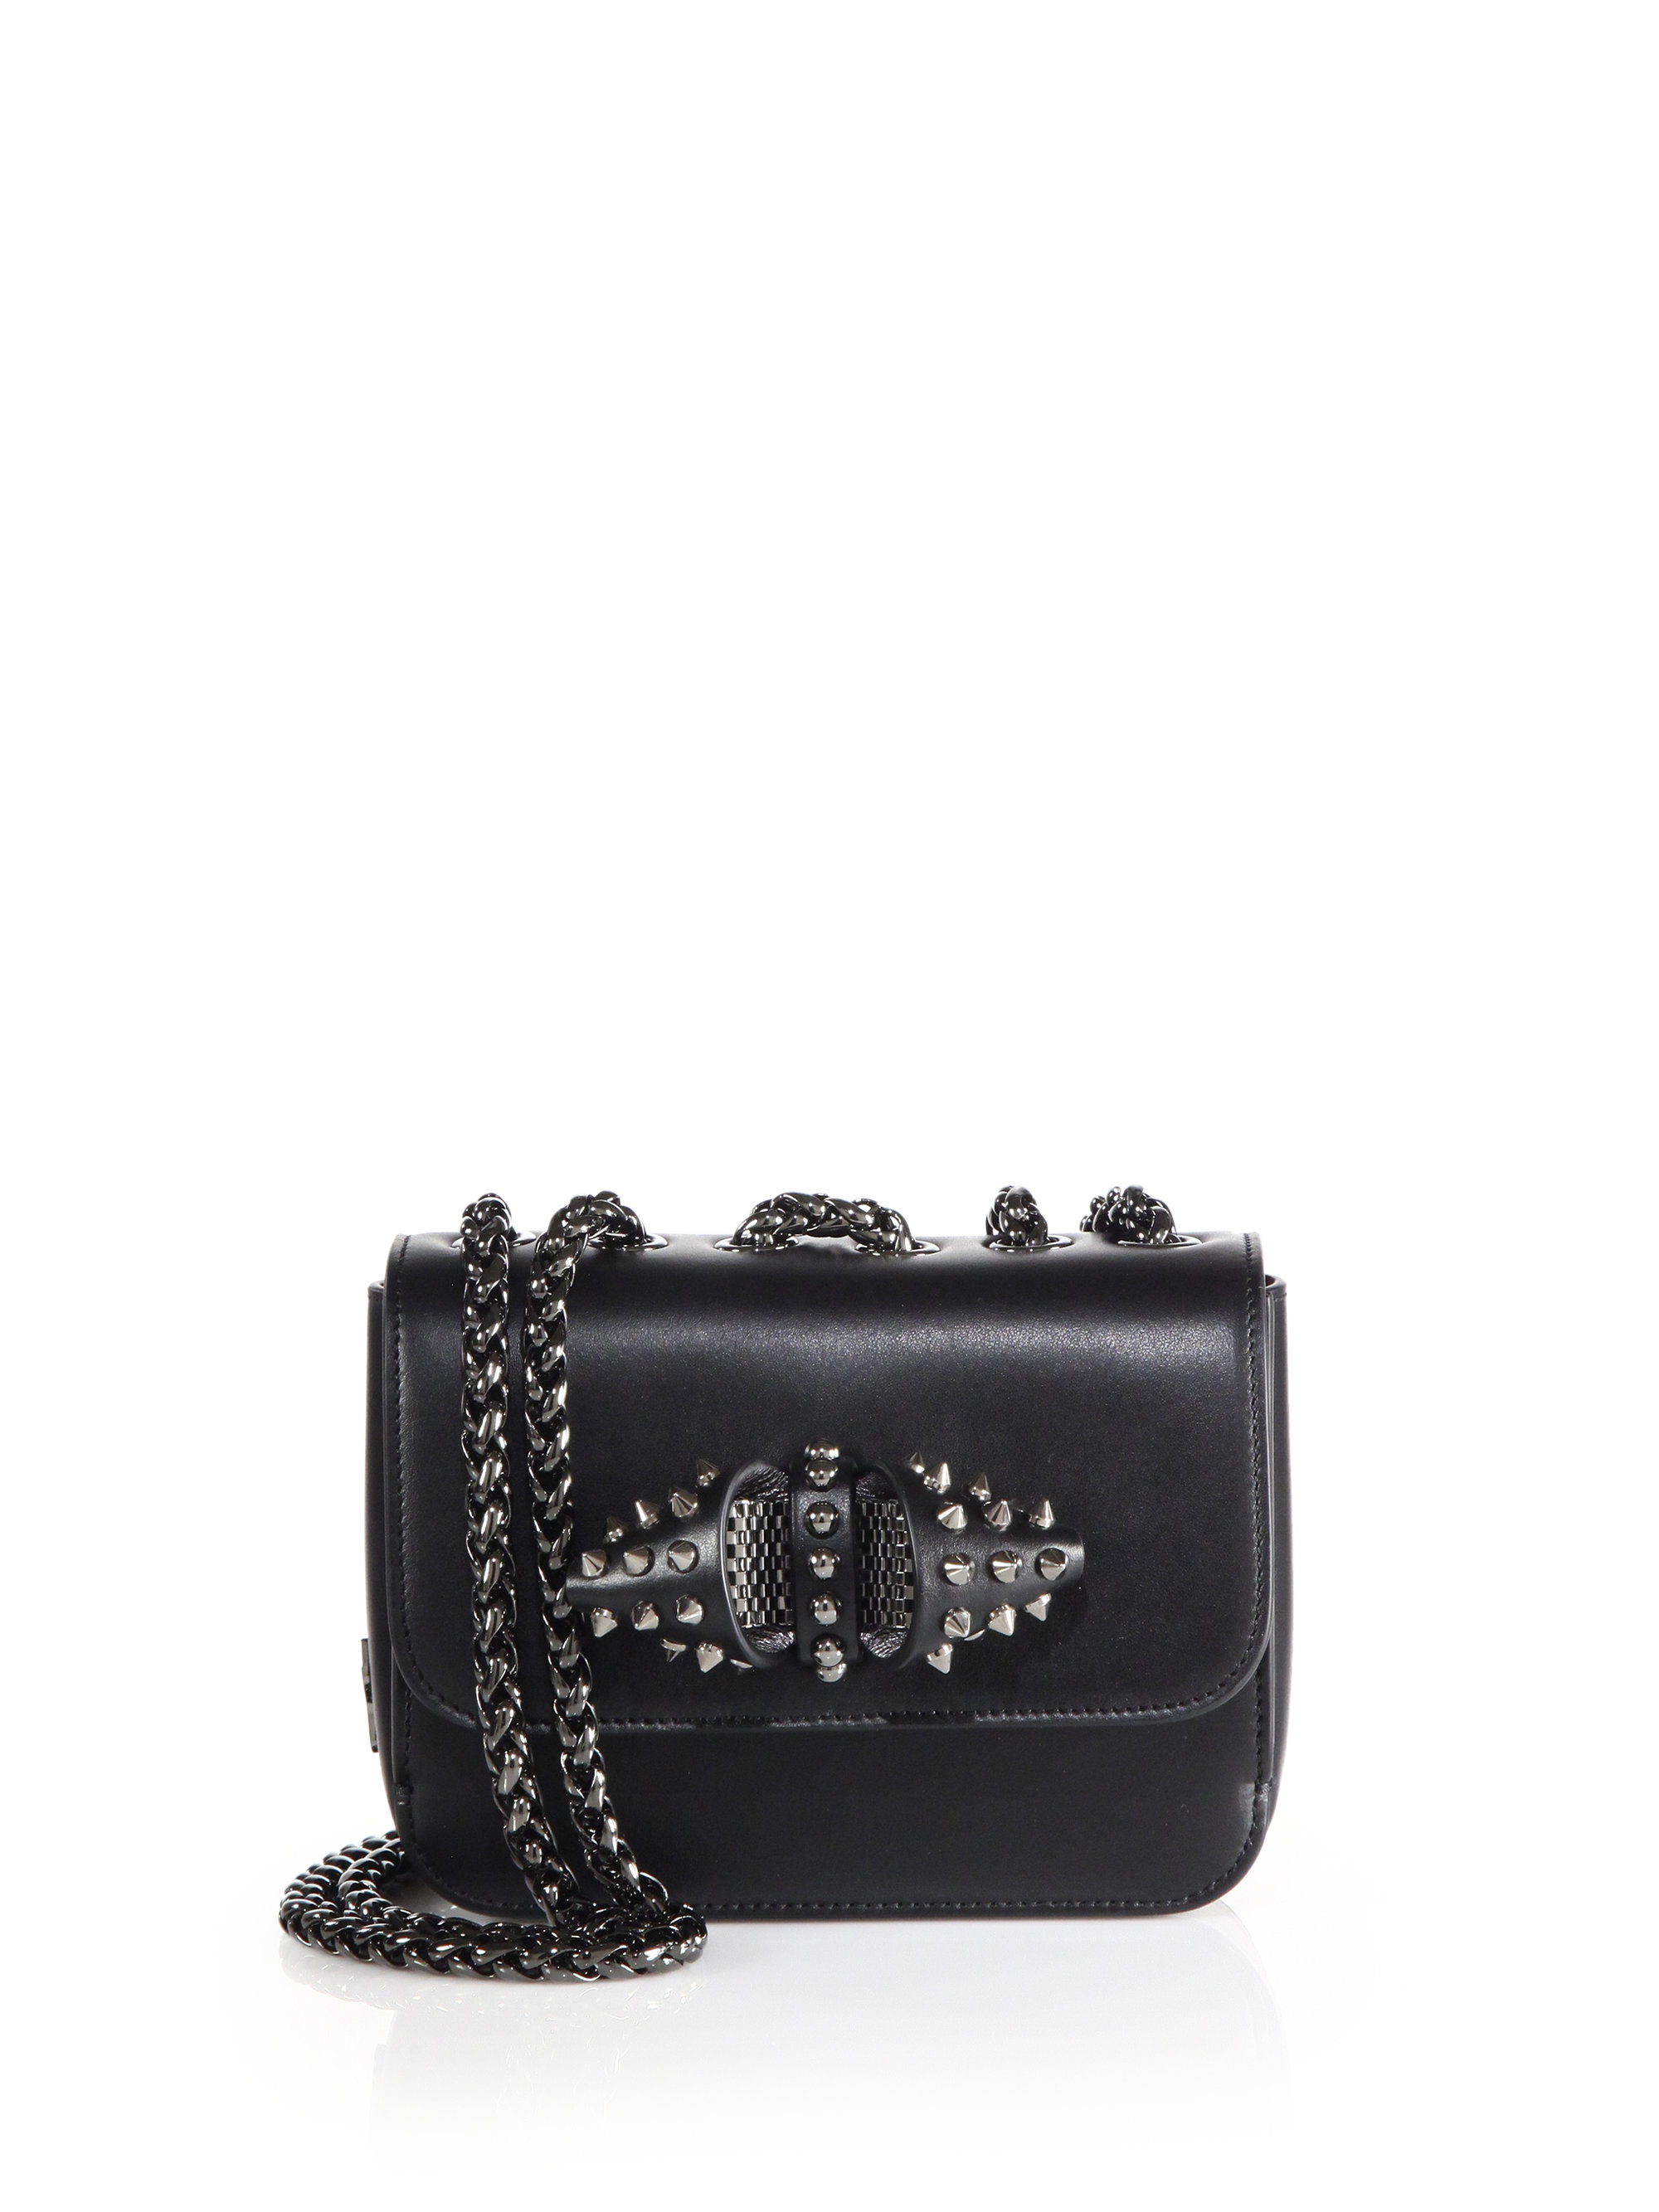 2123150b640 Christian Louboutin Black Sweet Charity Baby Spiked Leather Chain Crossbody  Bag